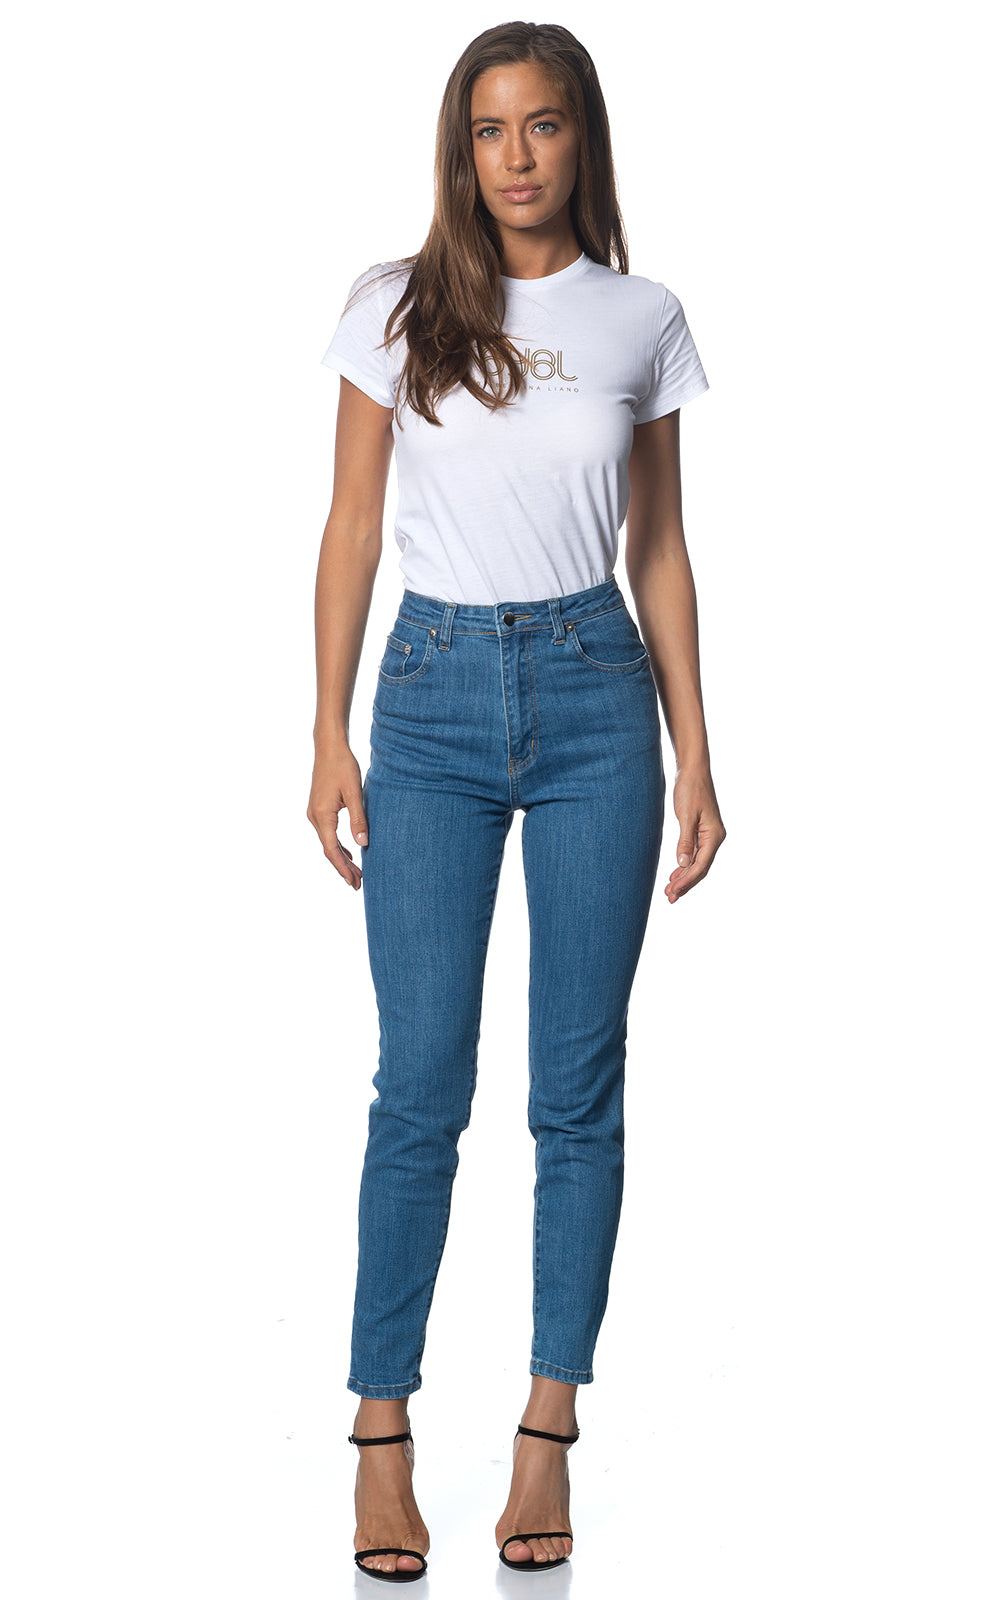 Halo Jean. Stretch. Very High Rise. Soft Blue Wash